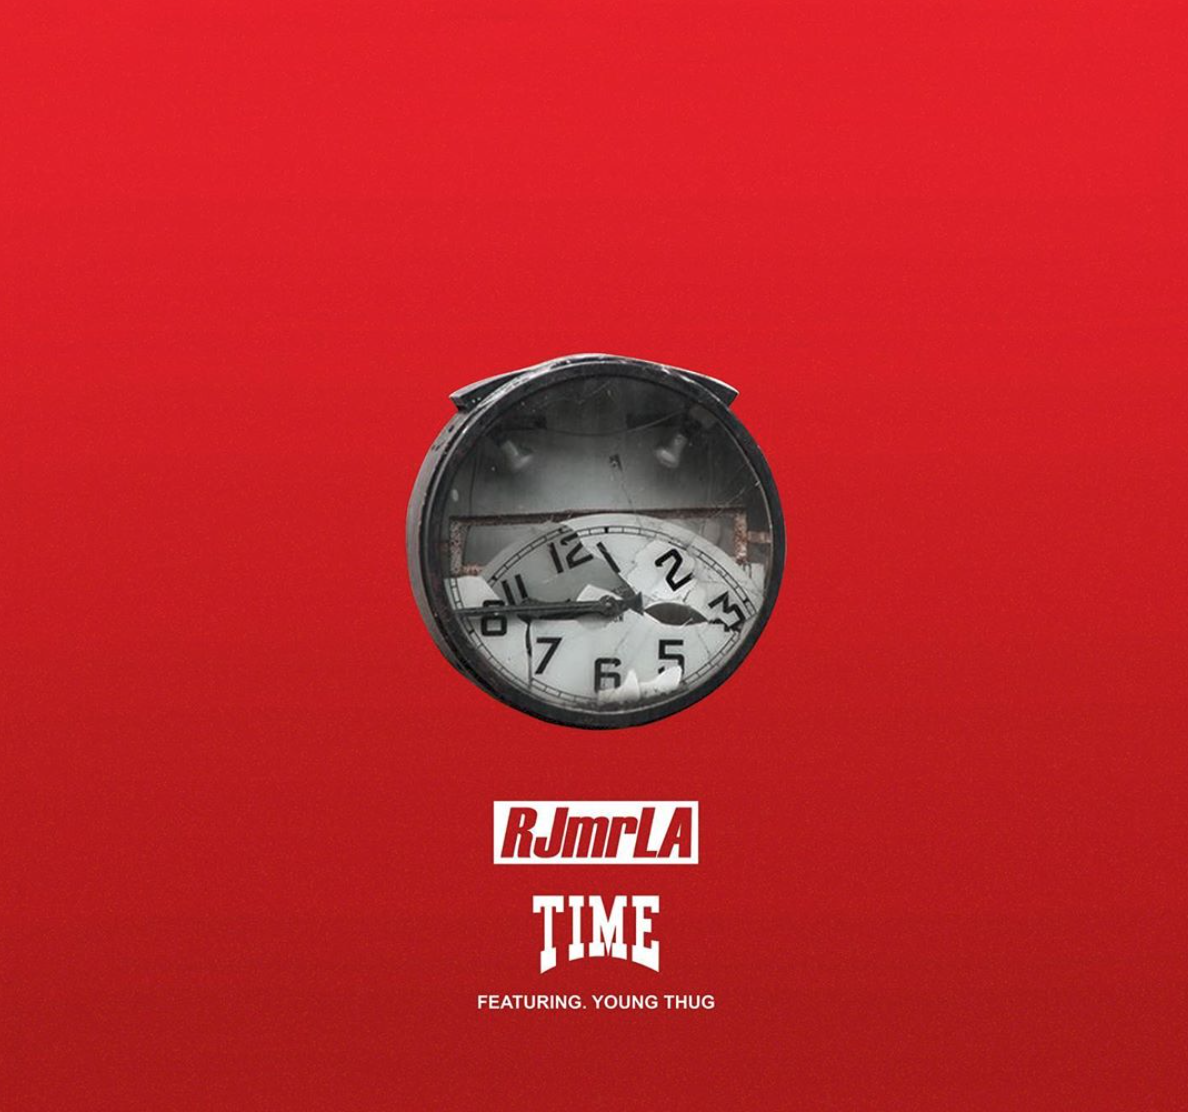 """RJMrLA Drops New Track """"Time"""" Featuring Young Thug [LISTEN]"""